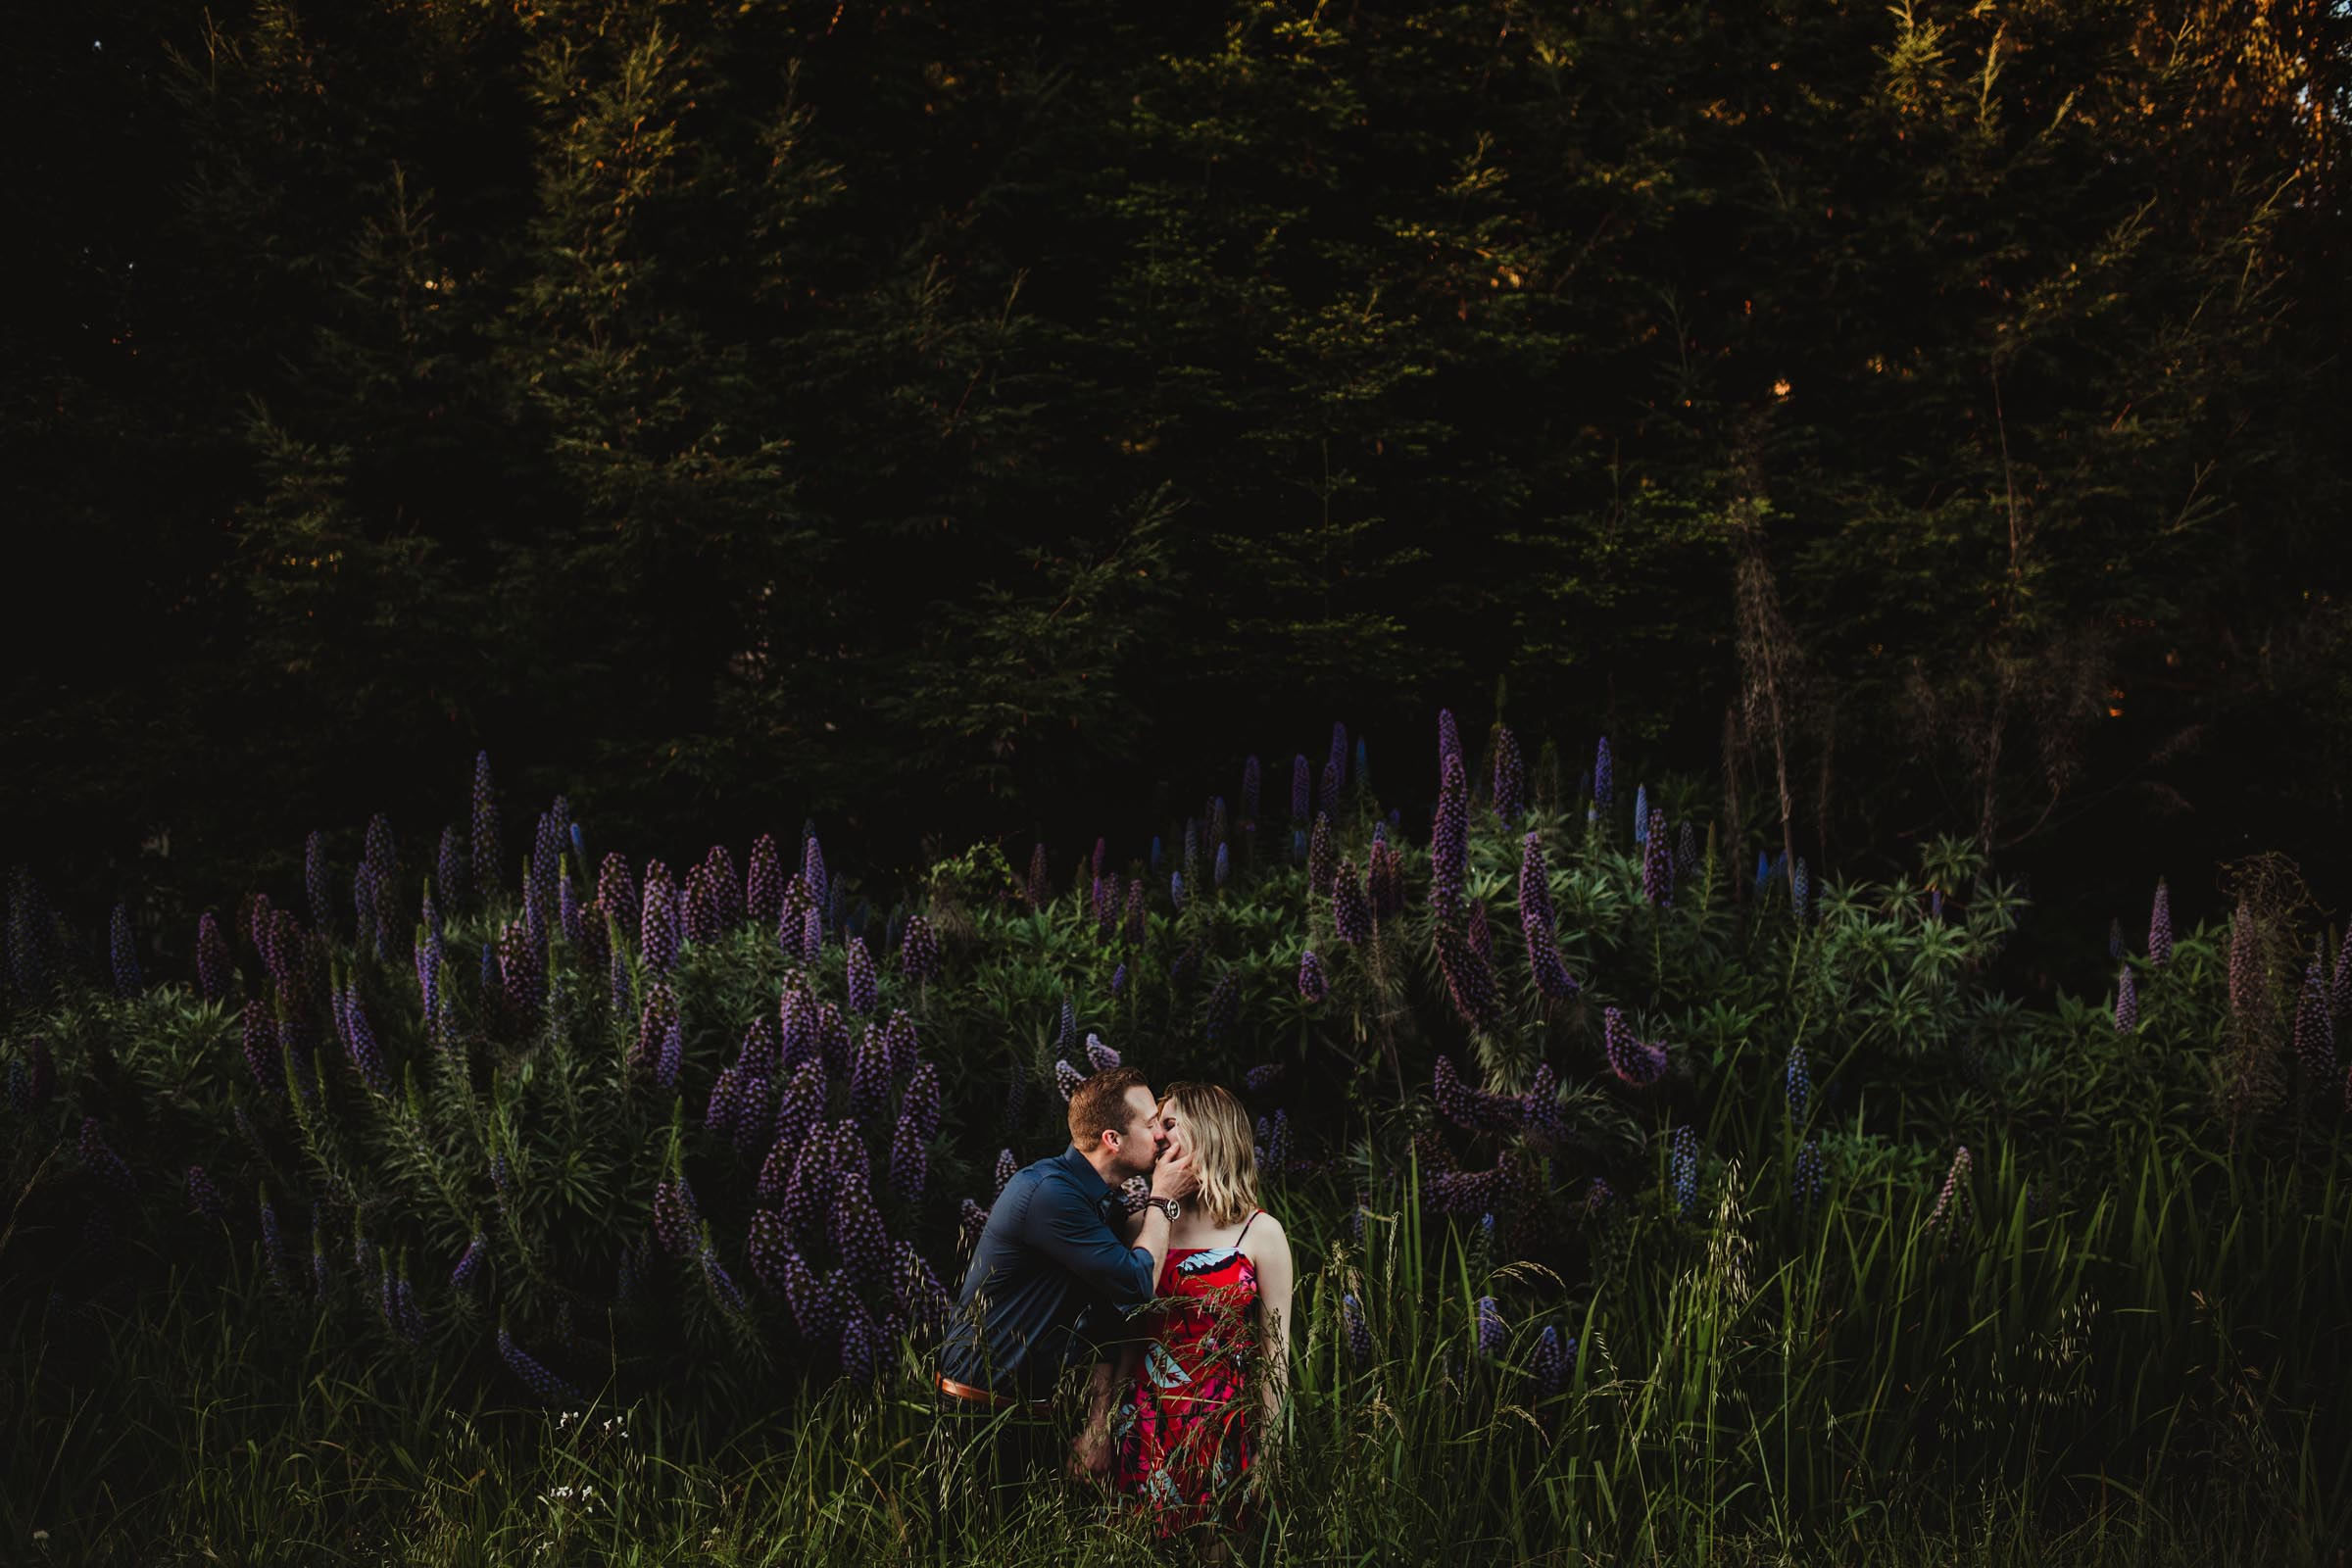 couple being affectionate in a field